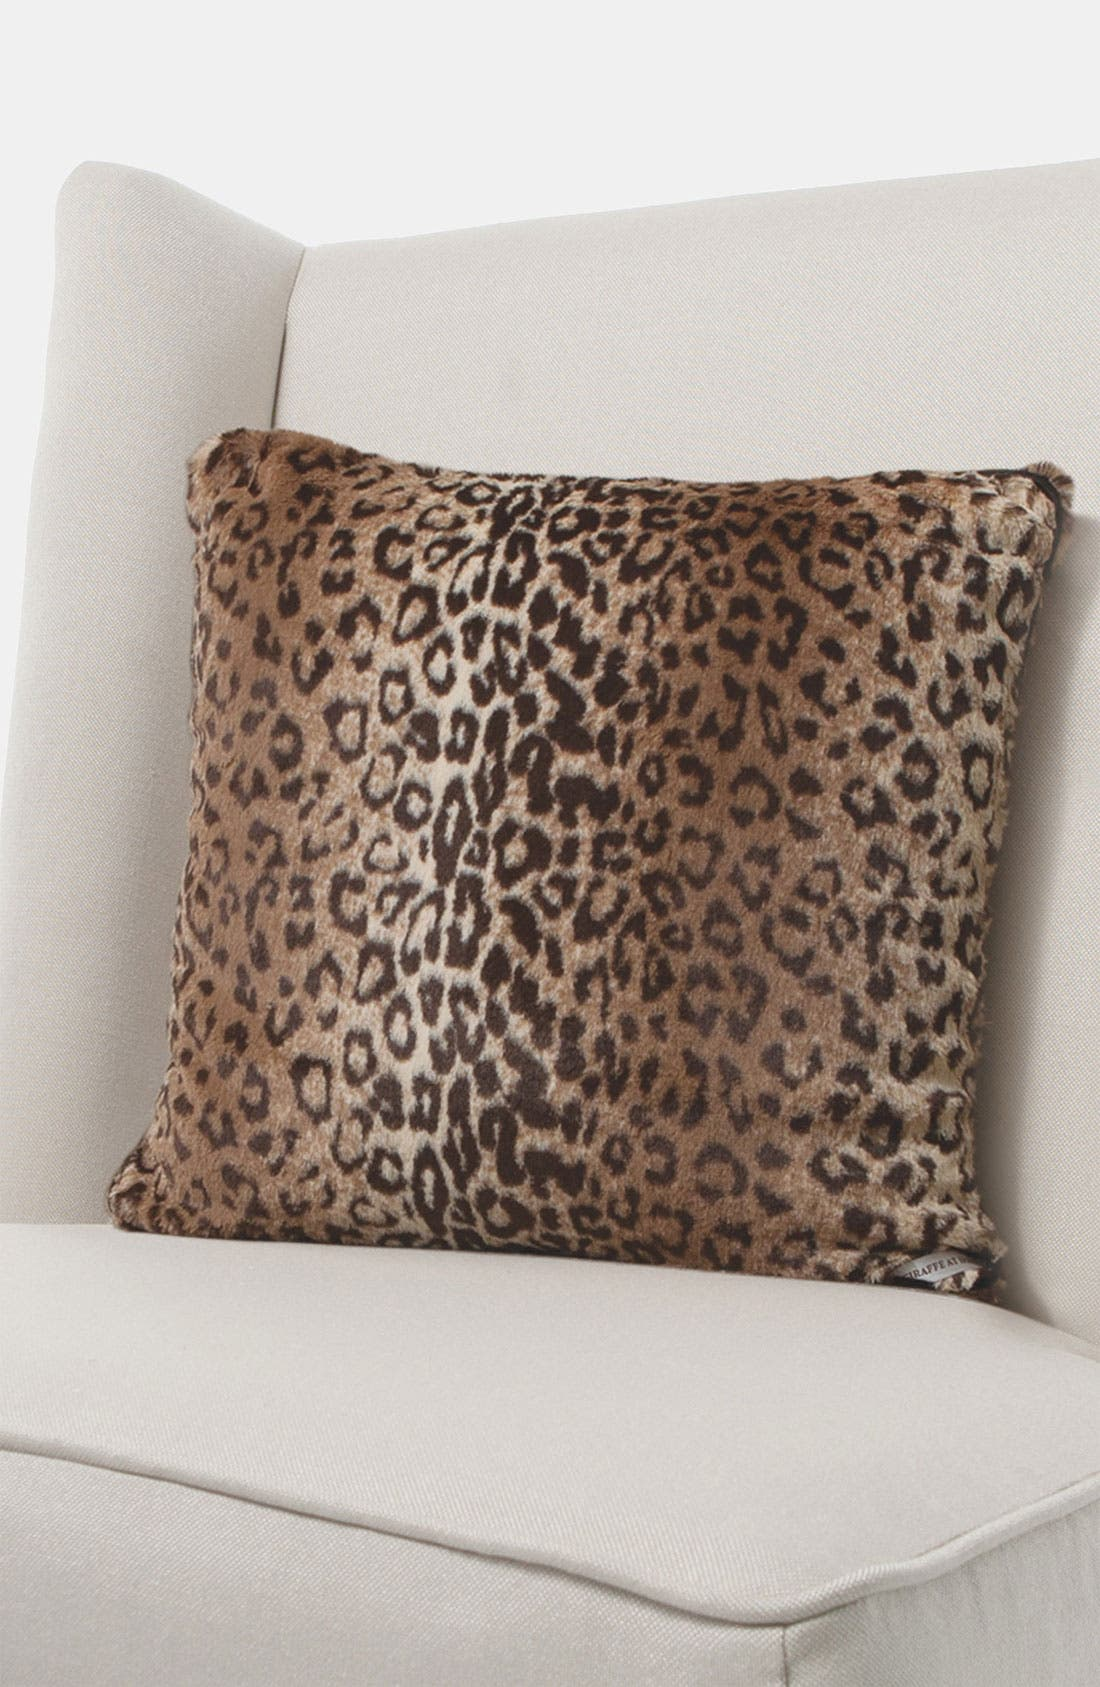 'Luxe Leopard' Throw Pillow,                             Main thumbnail 1, color,                             Espresso